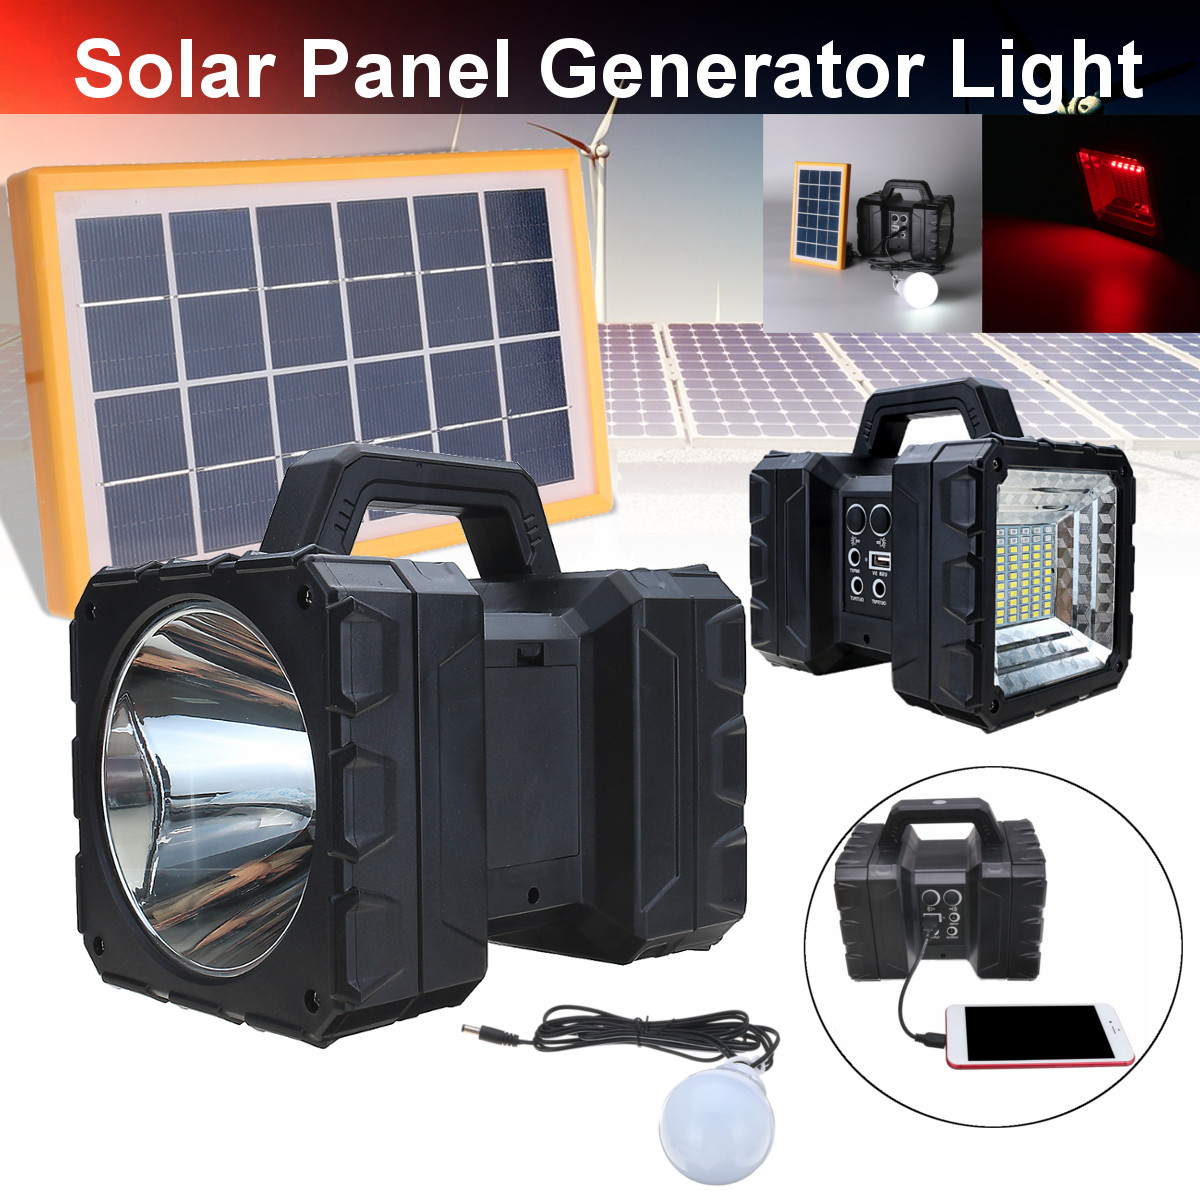 110V-220V Portable Home Outdoor Solar Panels Charging Generator Power Generation System Power Bank With LED Light Lantern home outdoor lighting portable led solar panels charging generator power system support usb disk sd card fm function rc